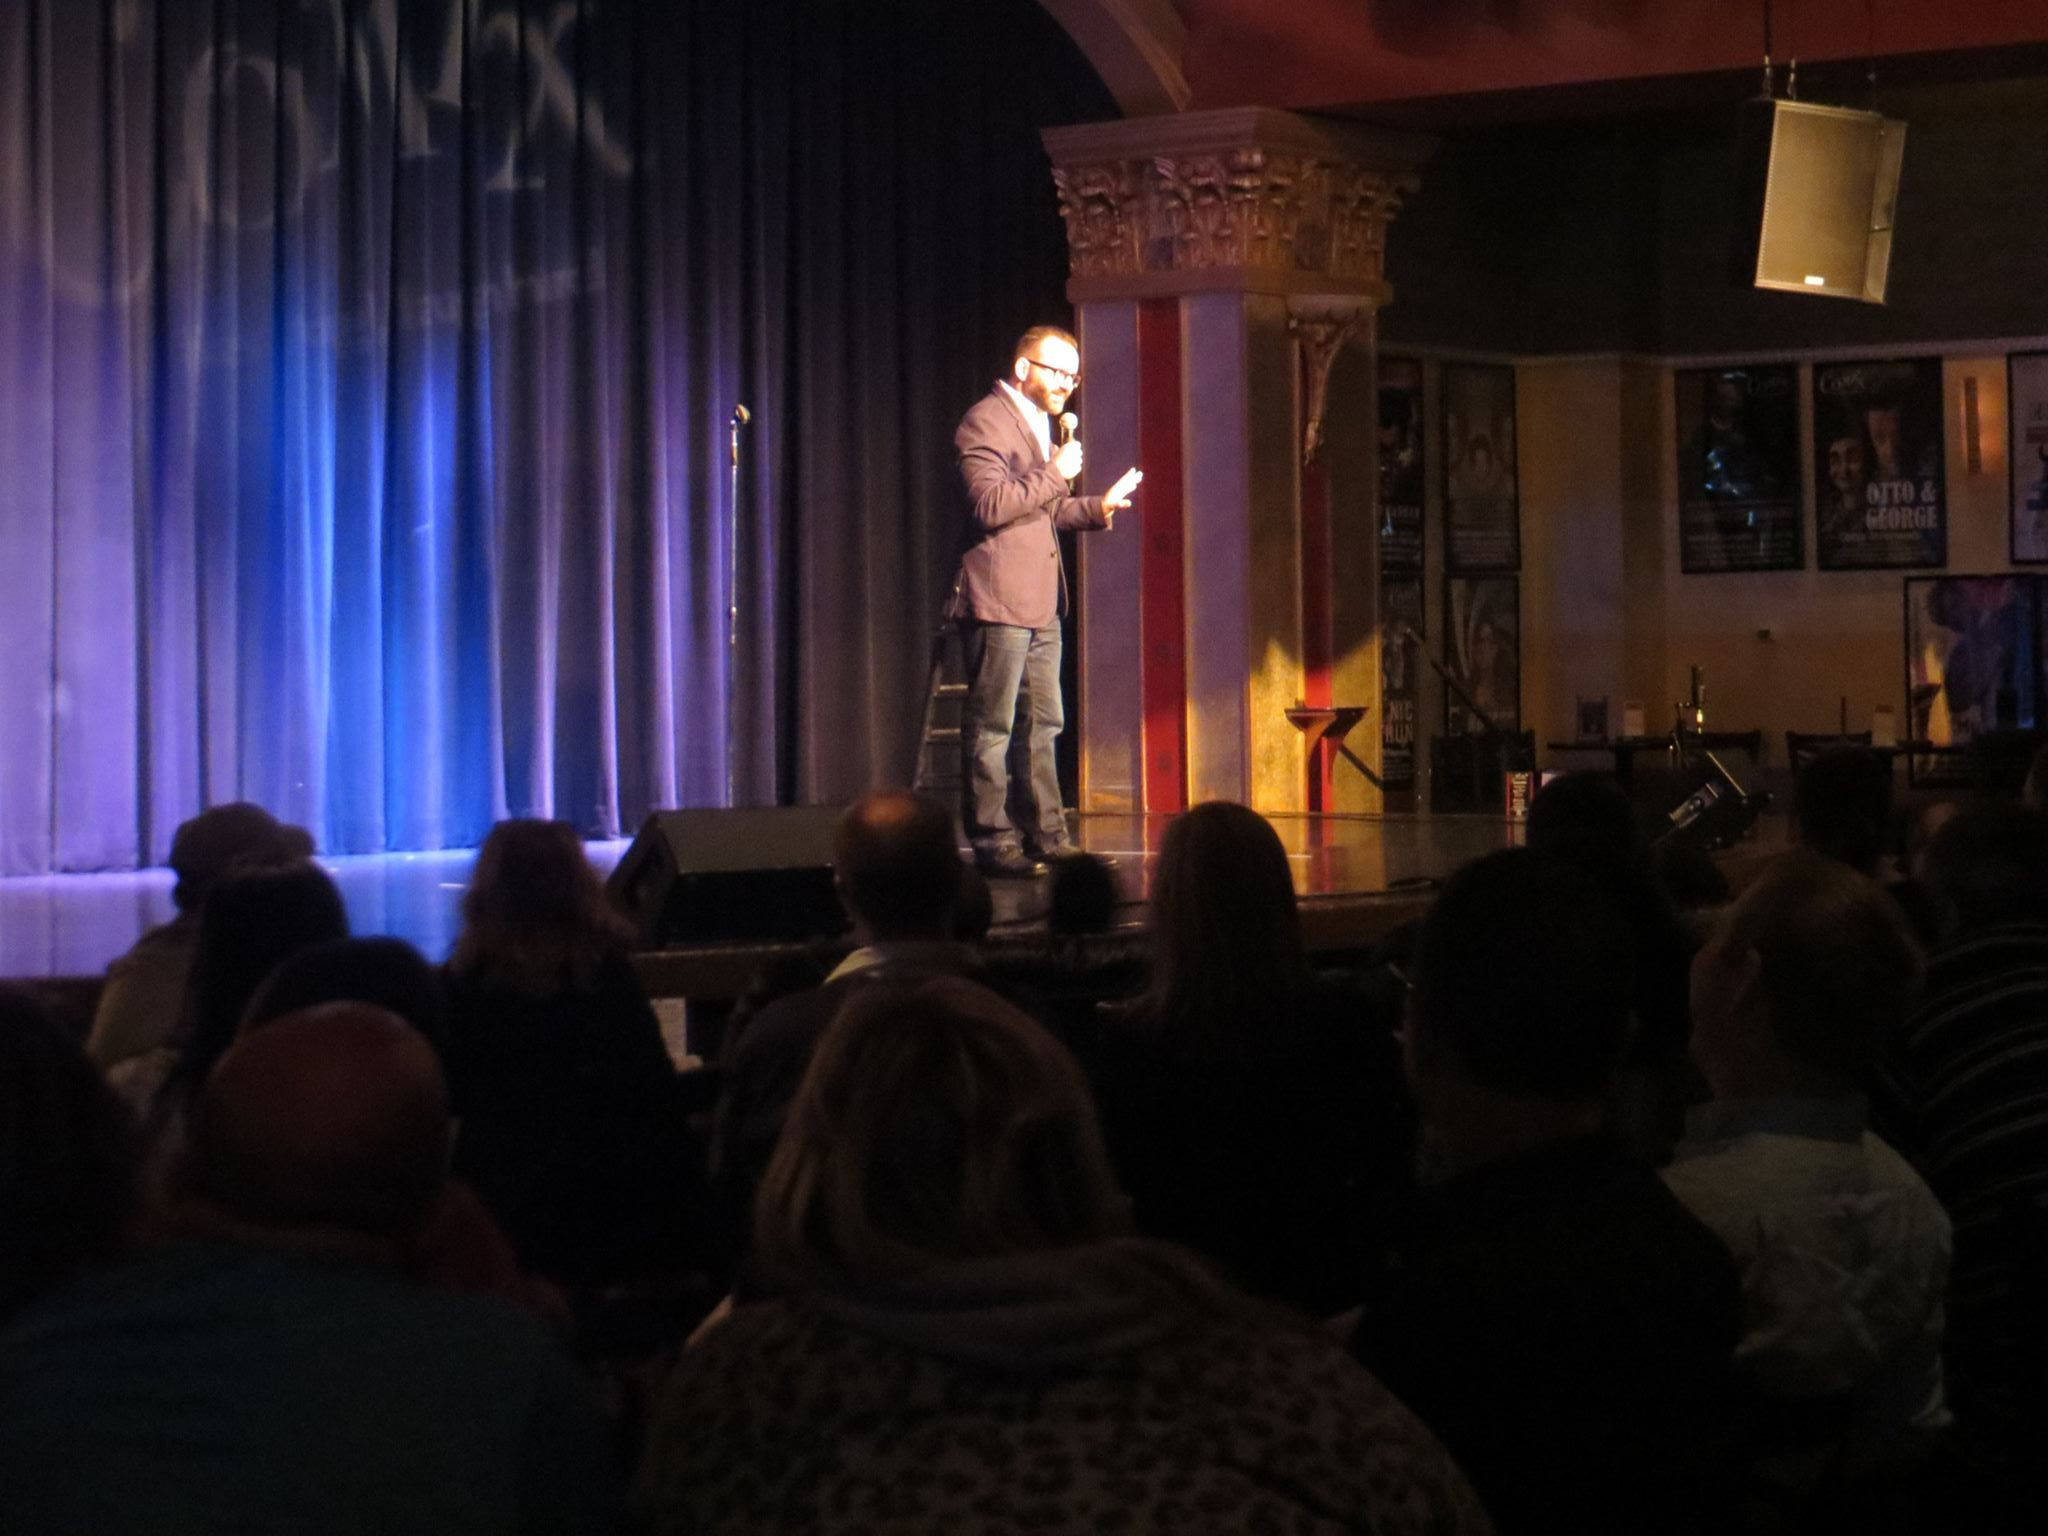 Comedy venue departs one tribal casino for another in Connecticut